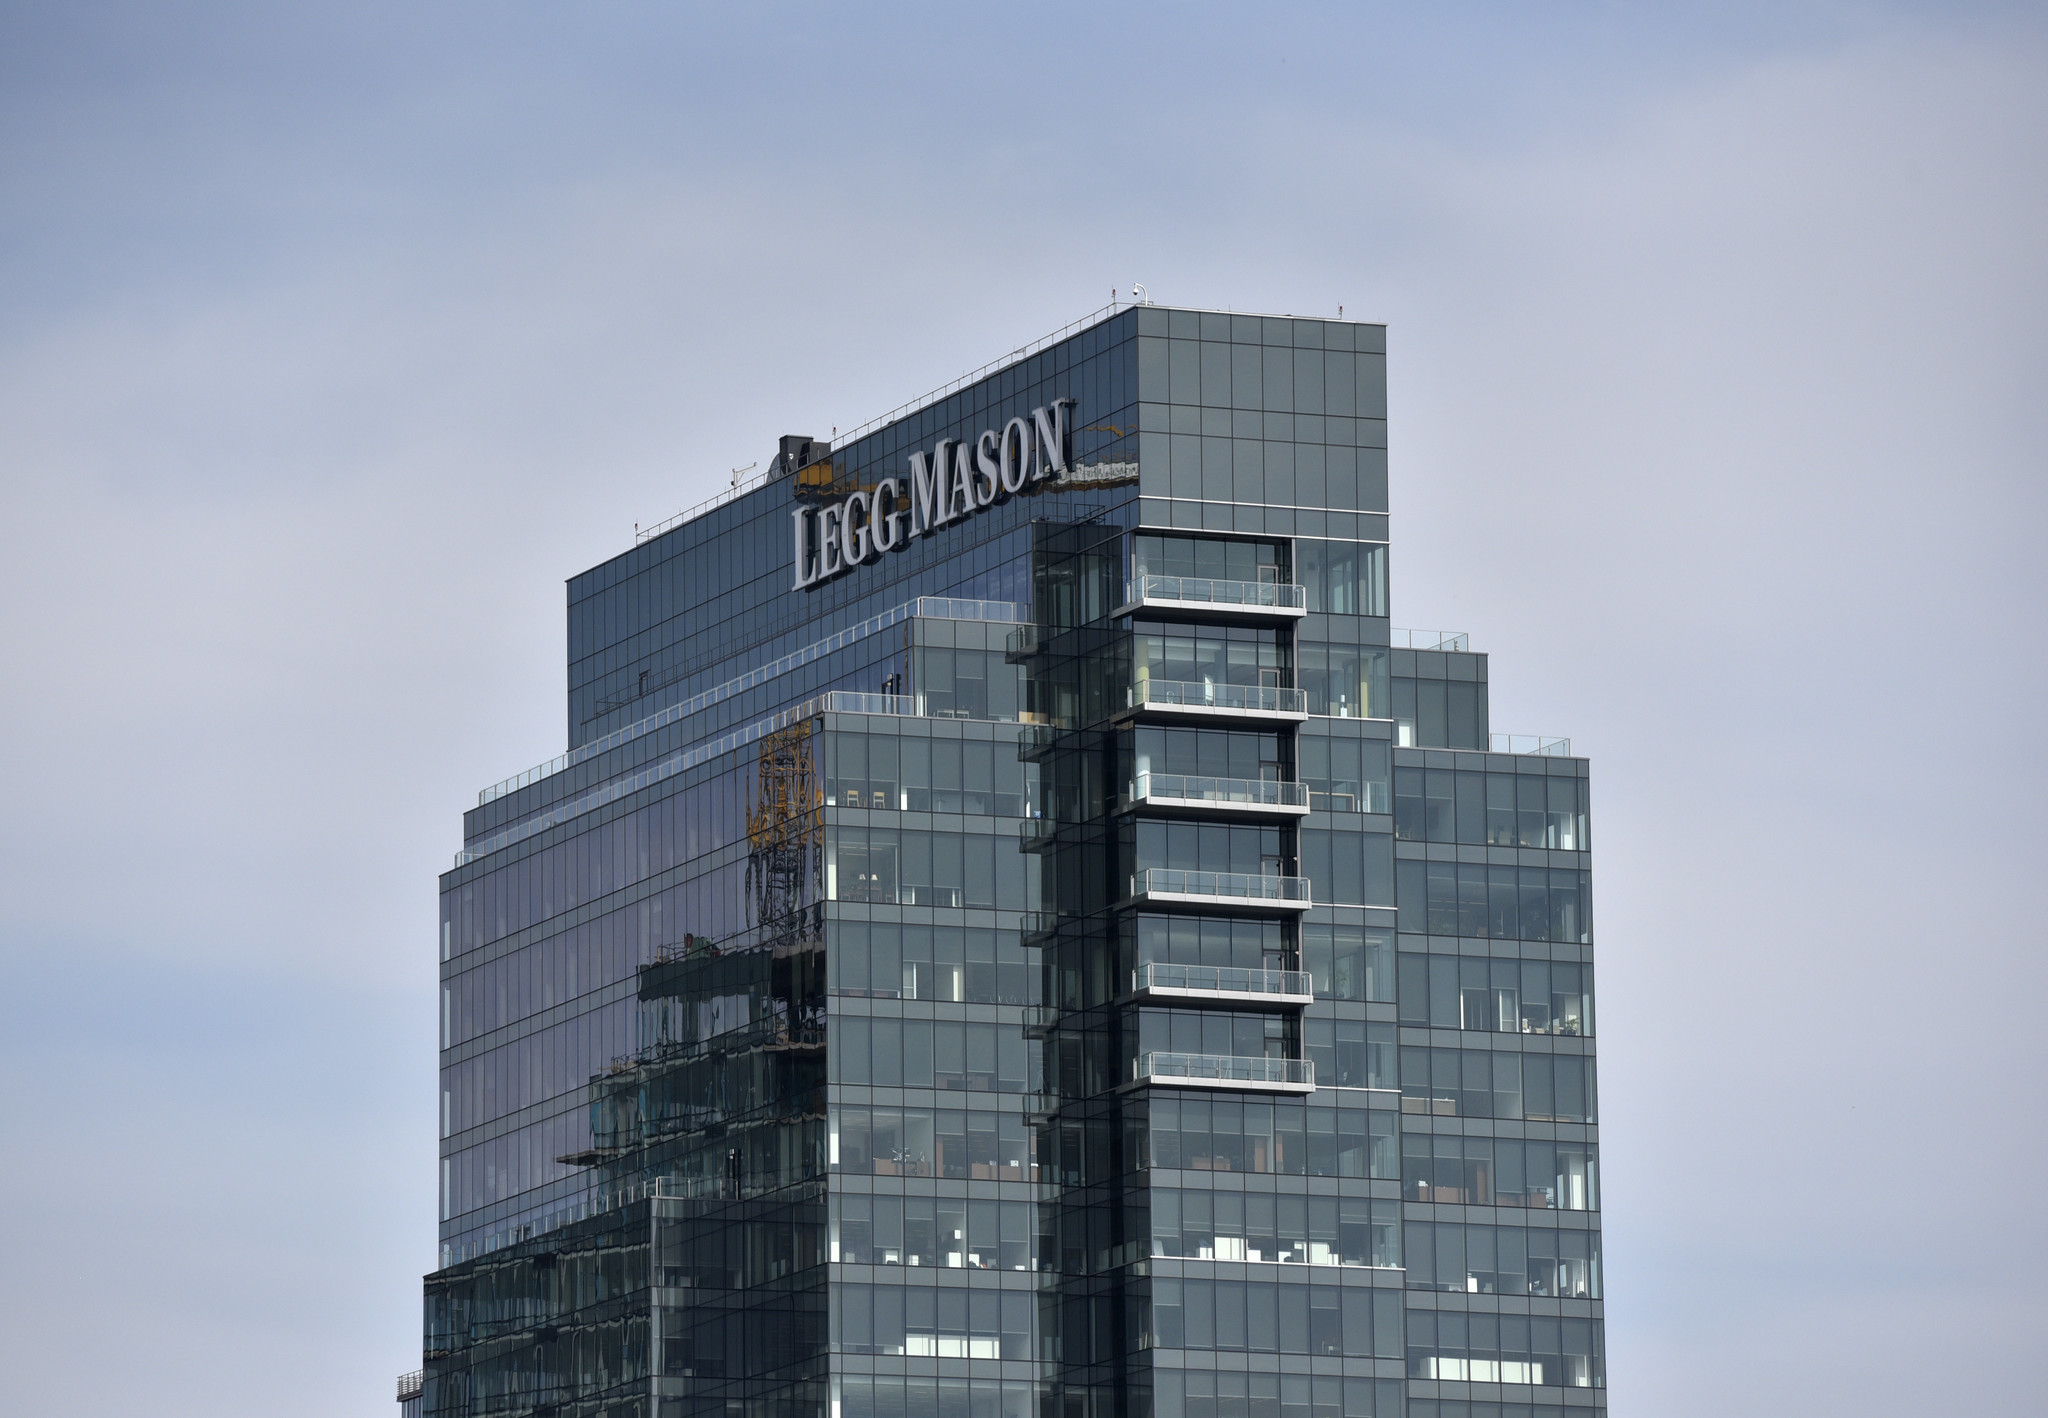 legg mason tower sale values building at nearly  300